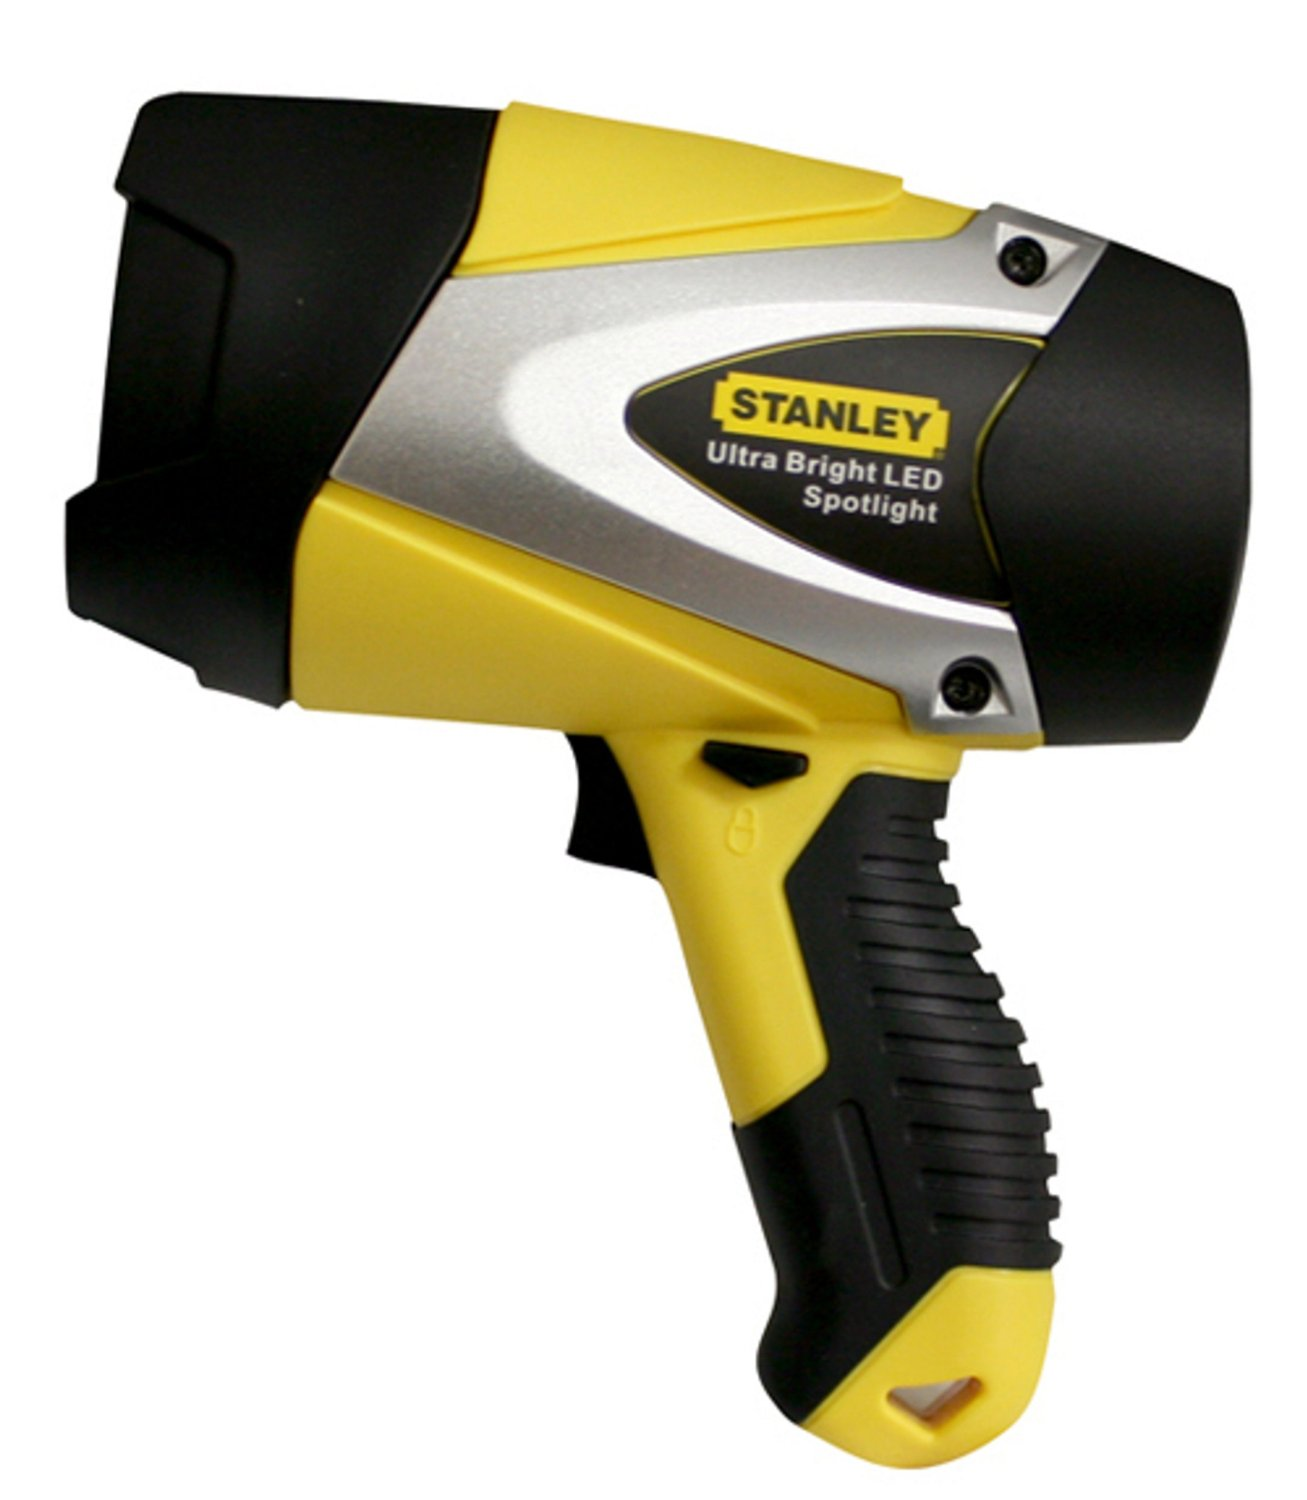 Stanley 5 Watt Led Rechargeable Spotlight: Going Green With Reuben: LED